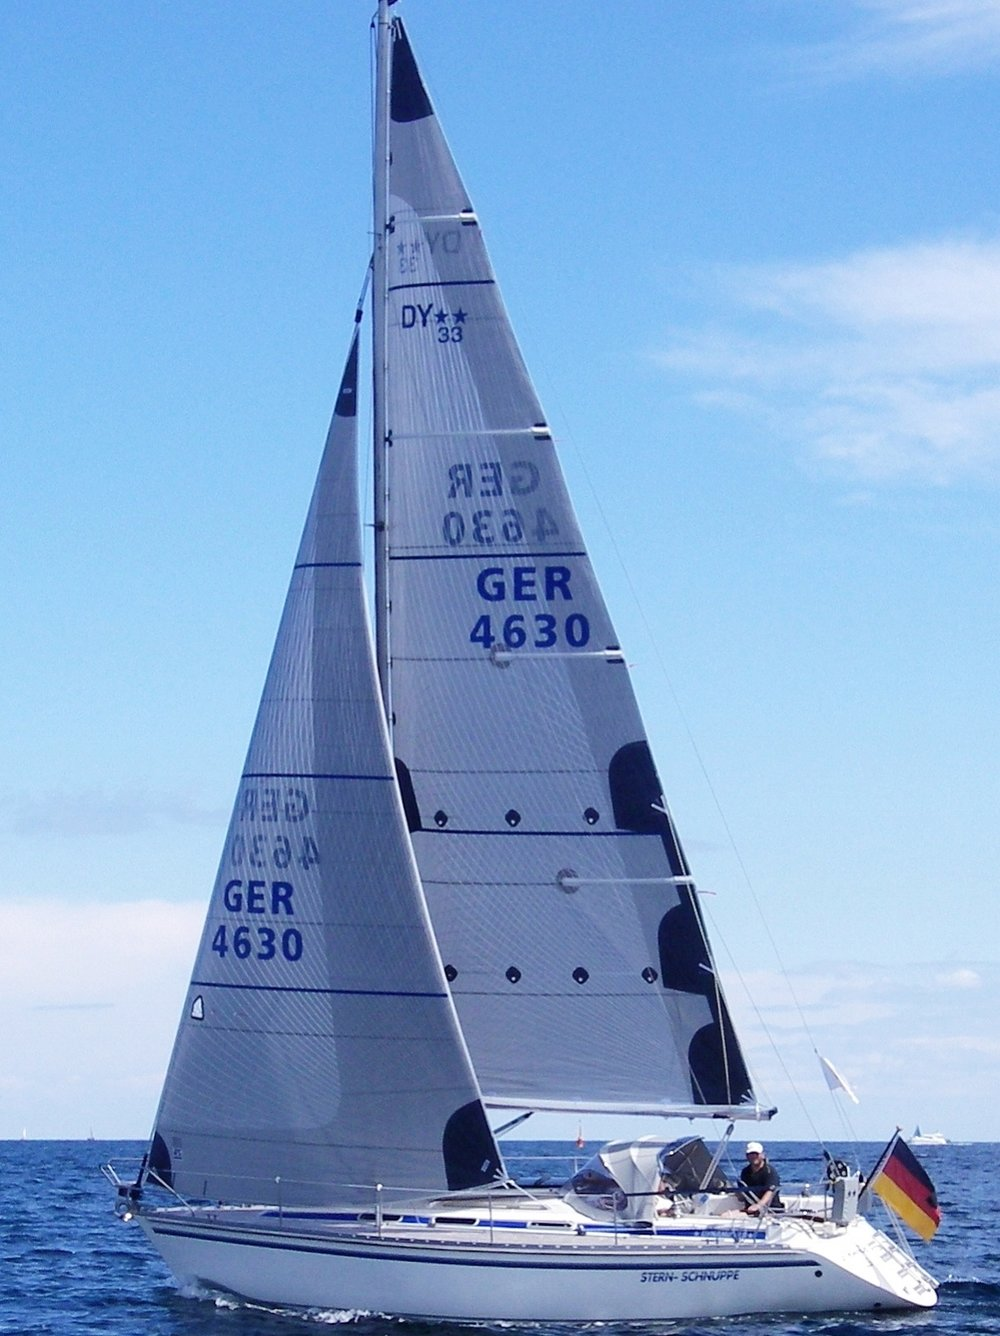 The genoa shown above has taffeta on the part of the sail overlapping the mast to protect the tapes and the sail's mylar layer. This boat's mainsail also has a partial taffeta layer up the whole leech.